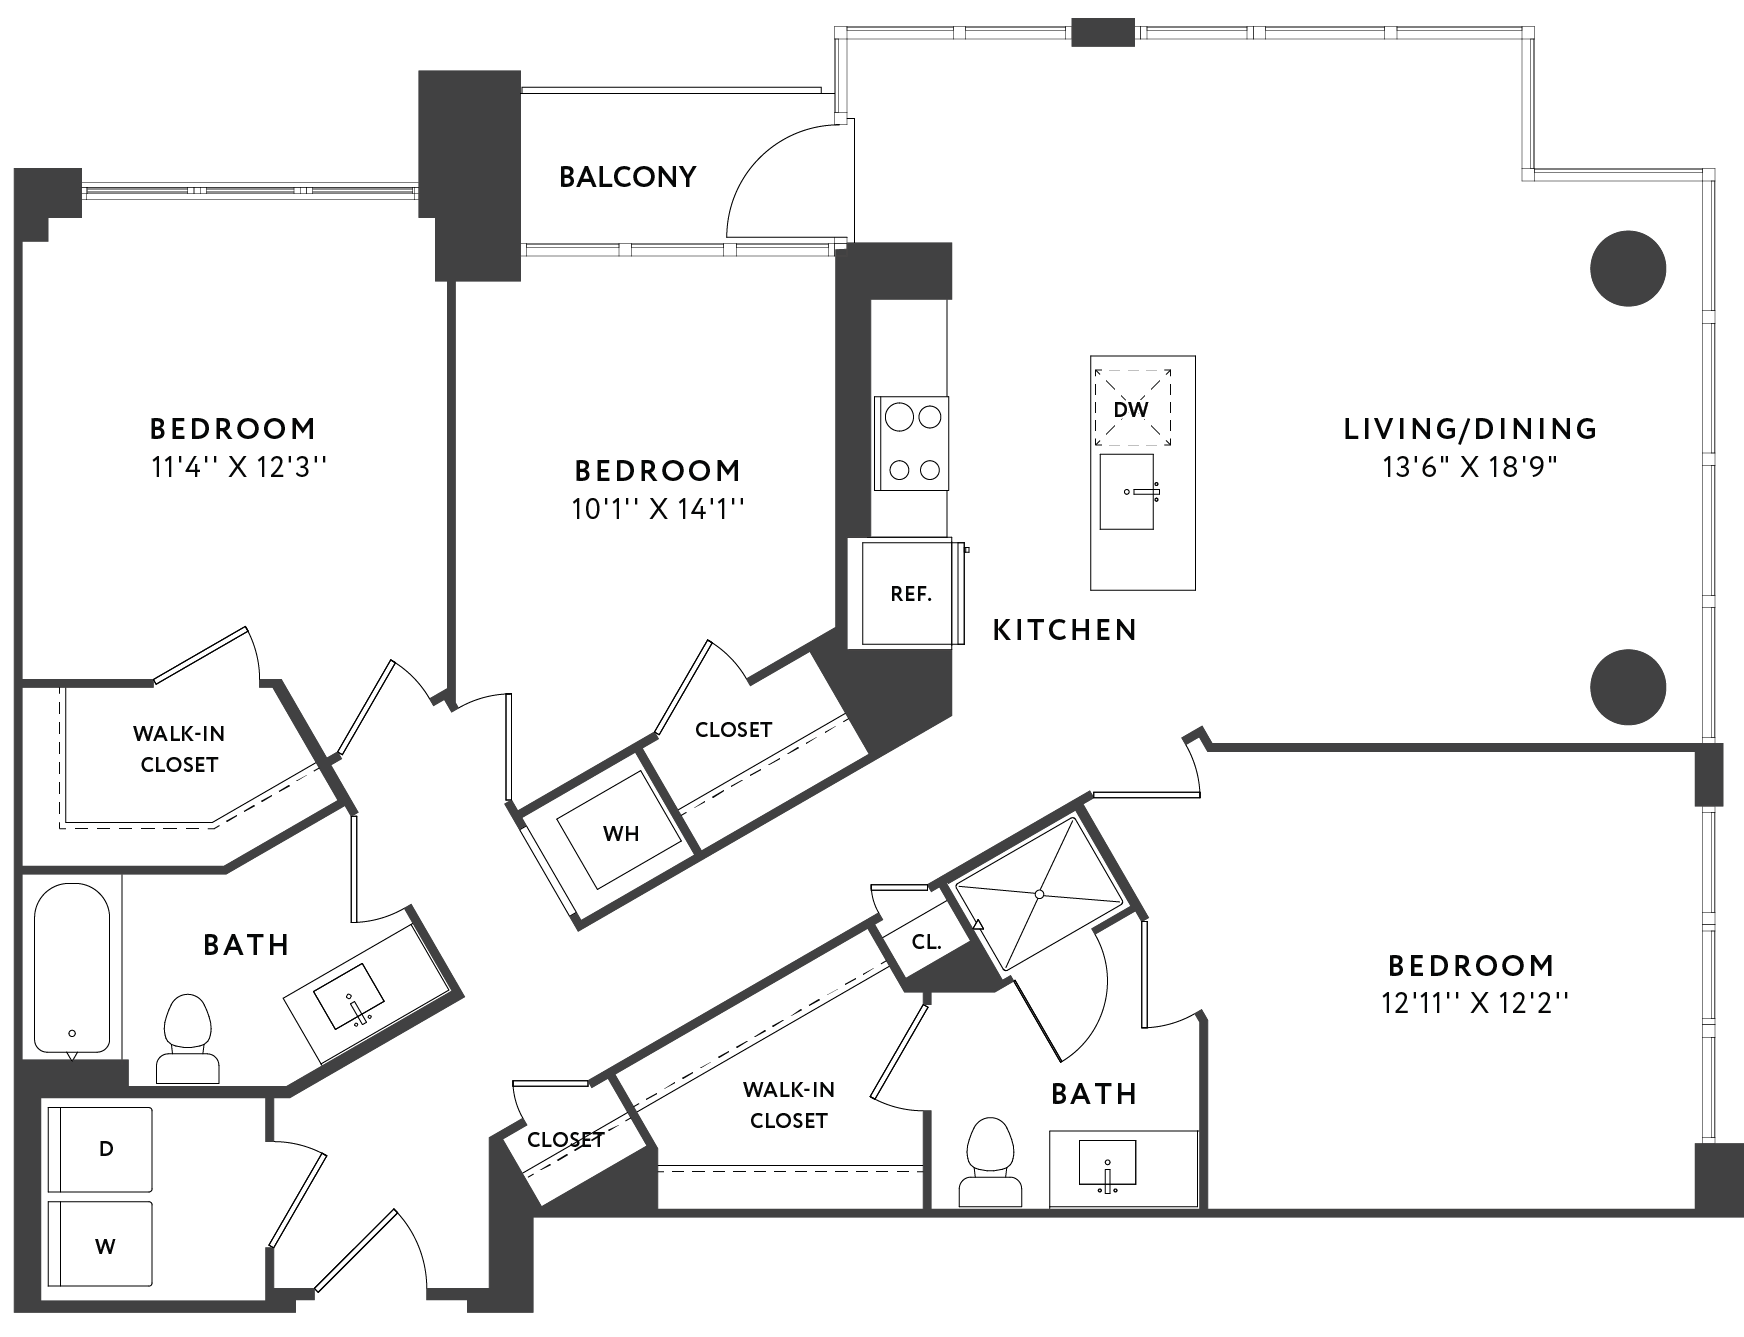 3 Bedroom  602 plan